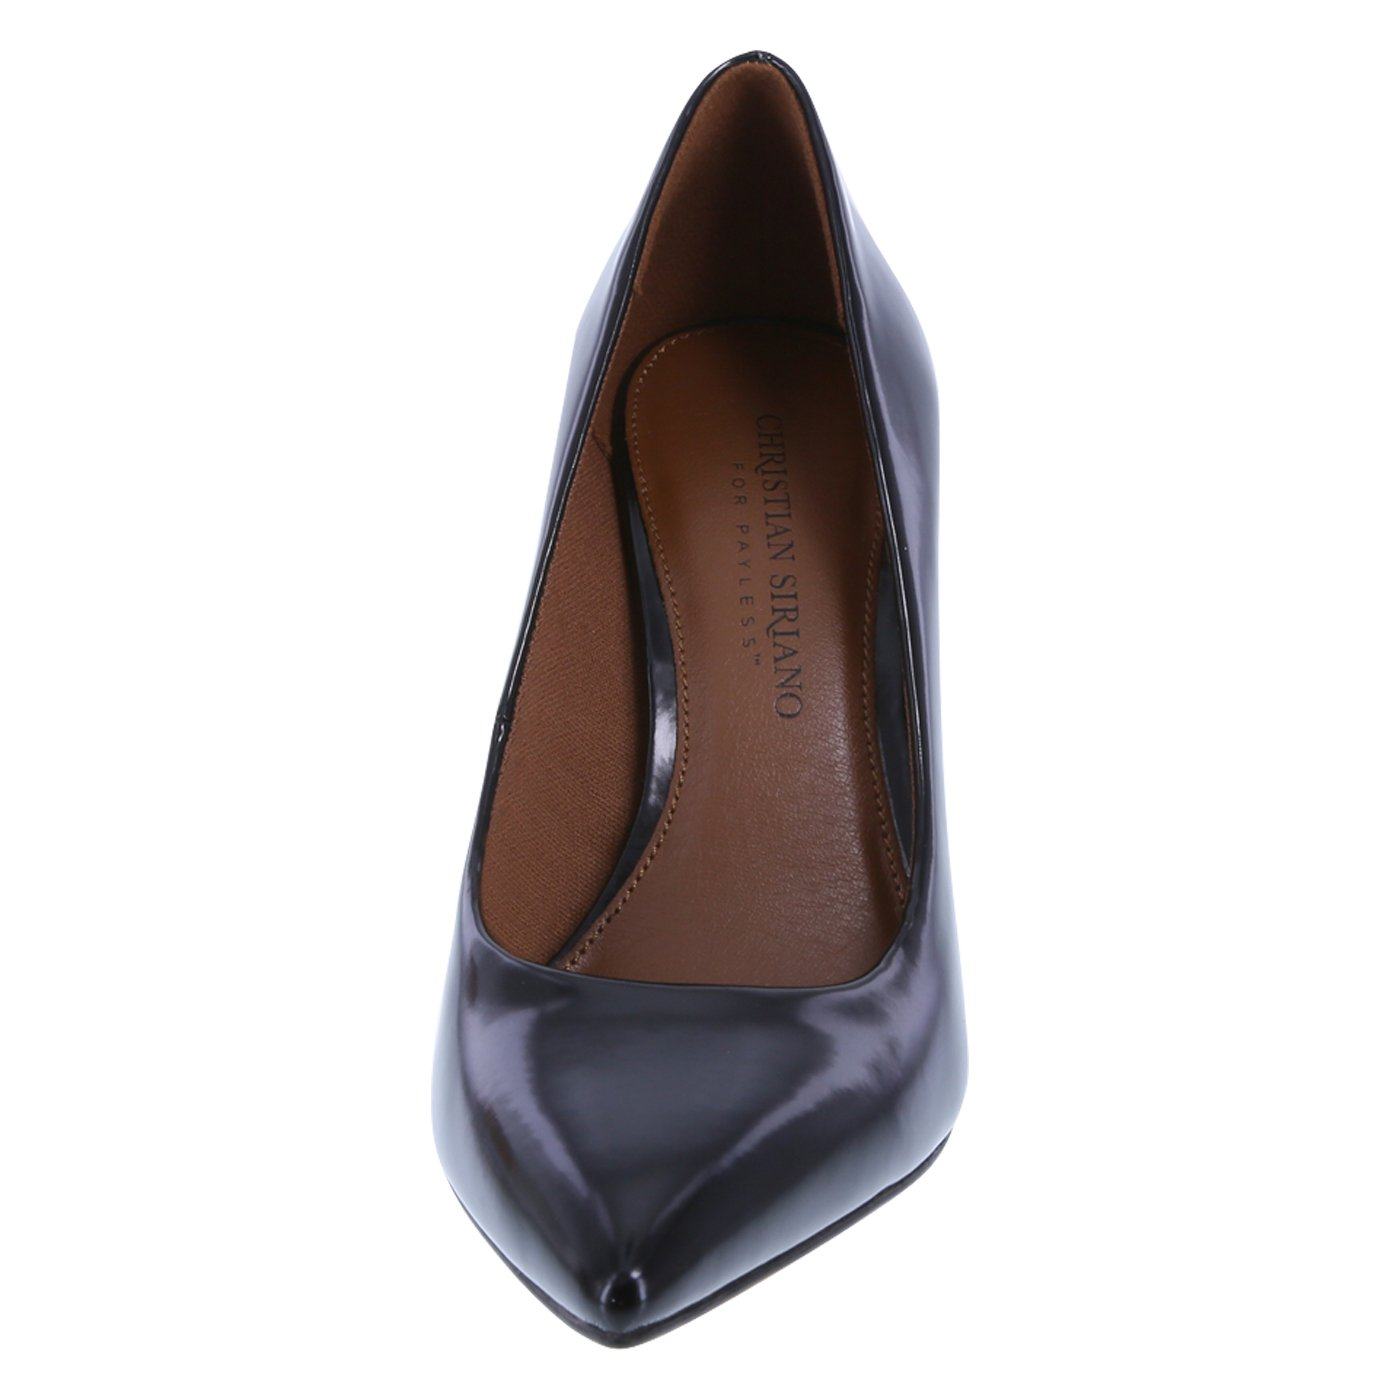 Christian Siriano for Payless Women's Smooth Black Women's Habit Pointed Pump 8.5 Regular by Christian Siriano for Payless (Image #4)